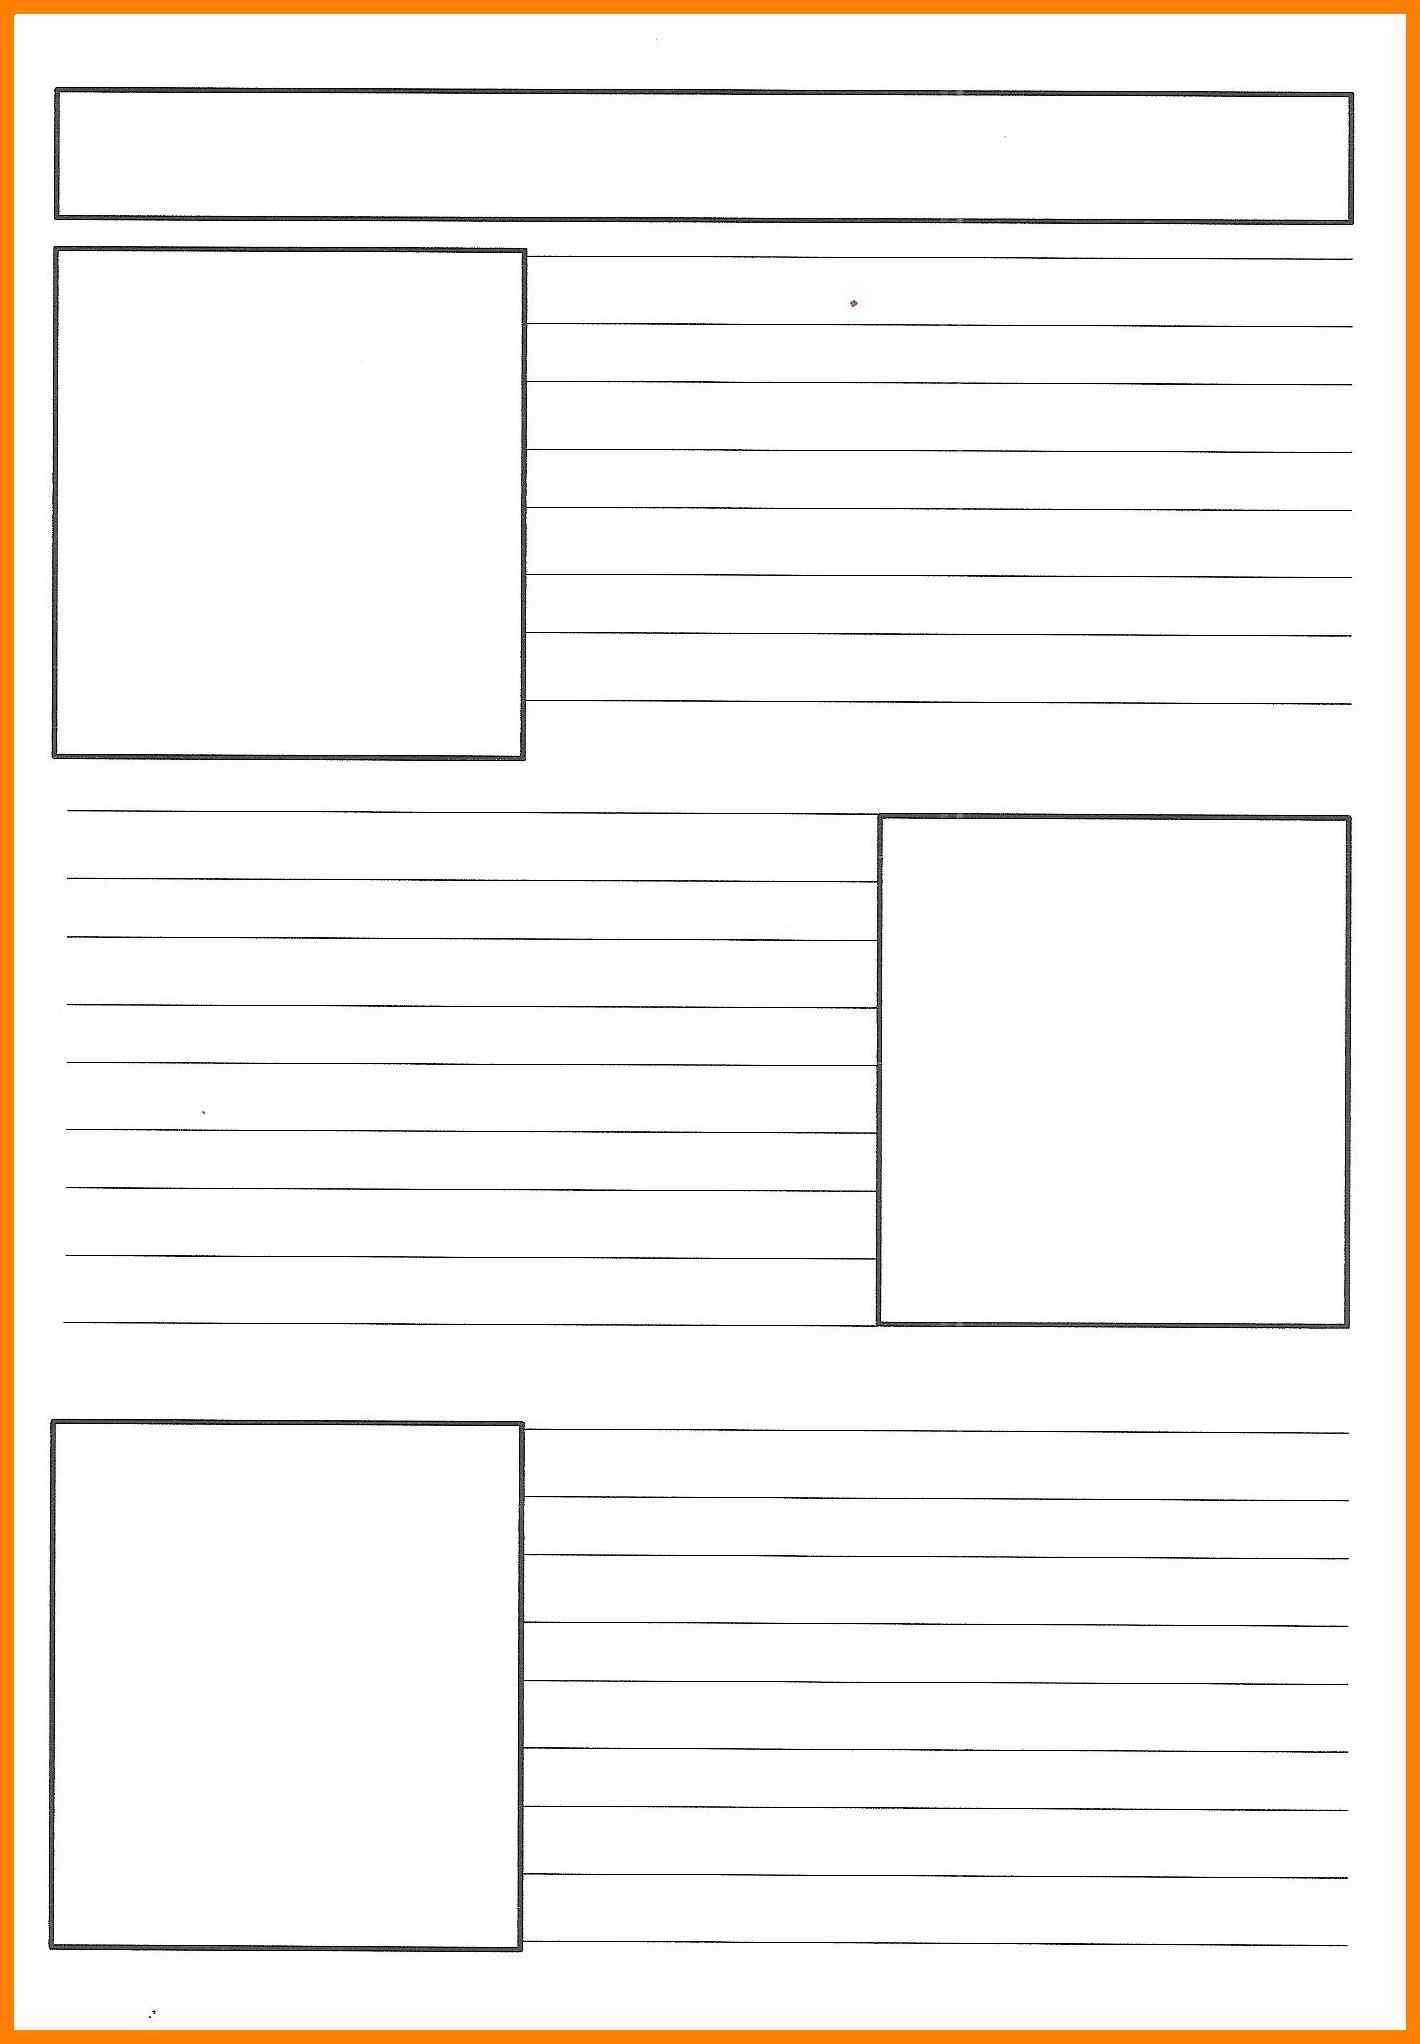 Free Printable Newspaper Template | Reference | Newspaper Article - Free Printable Newspaper Templates For Students